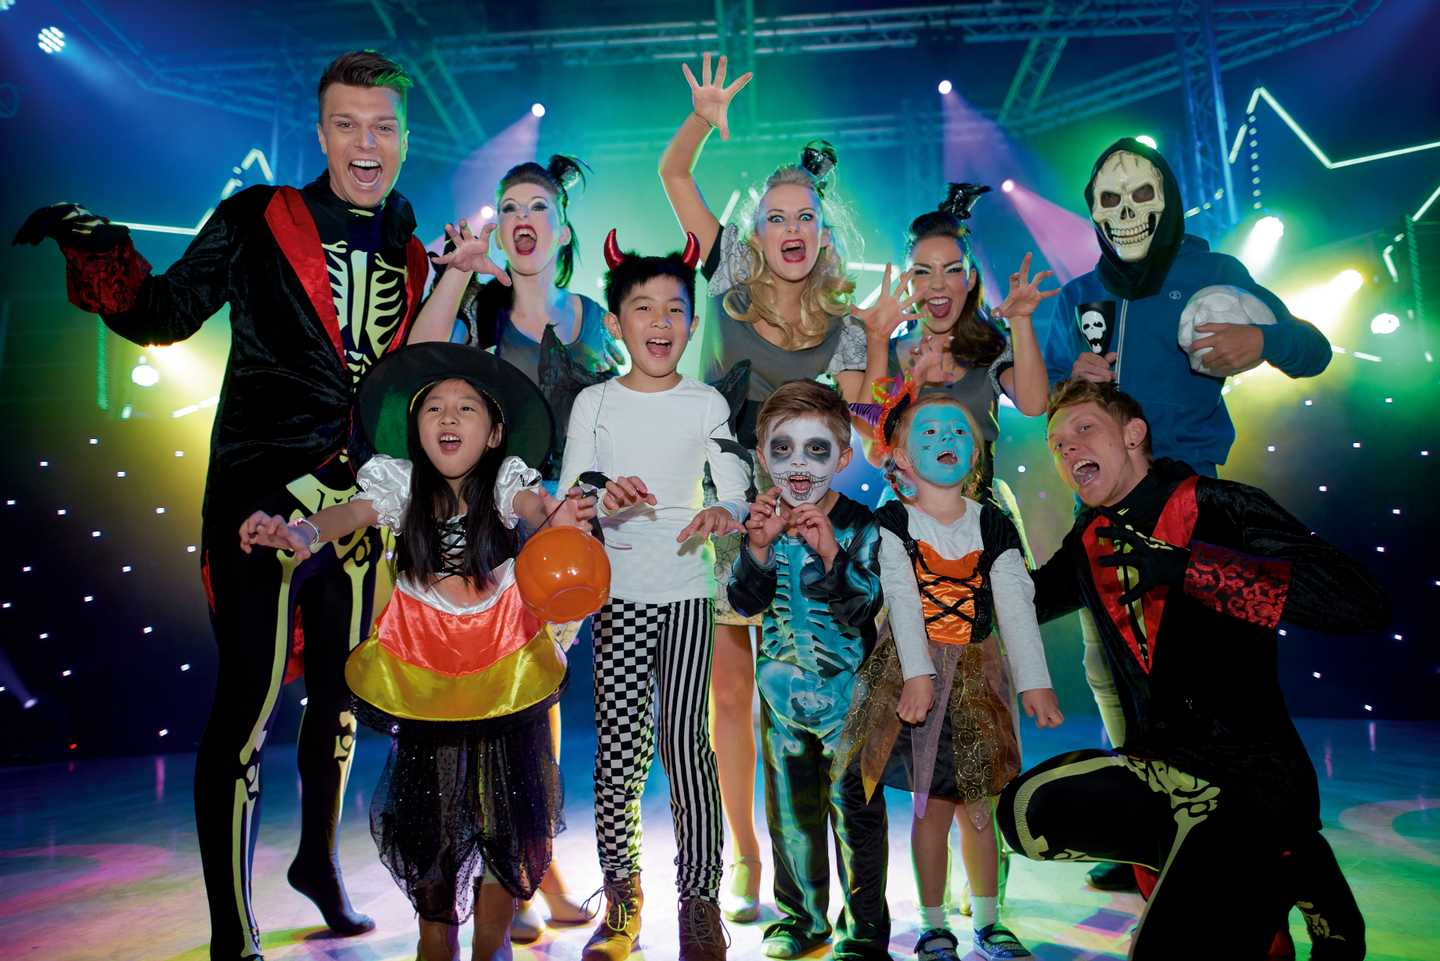 Some children and adults dressed up for Halloween on stage